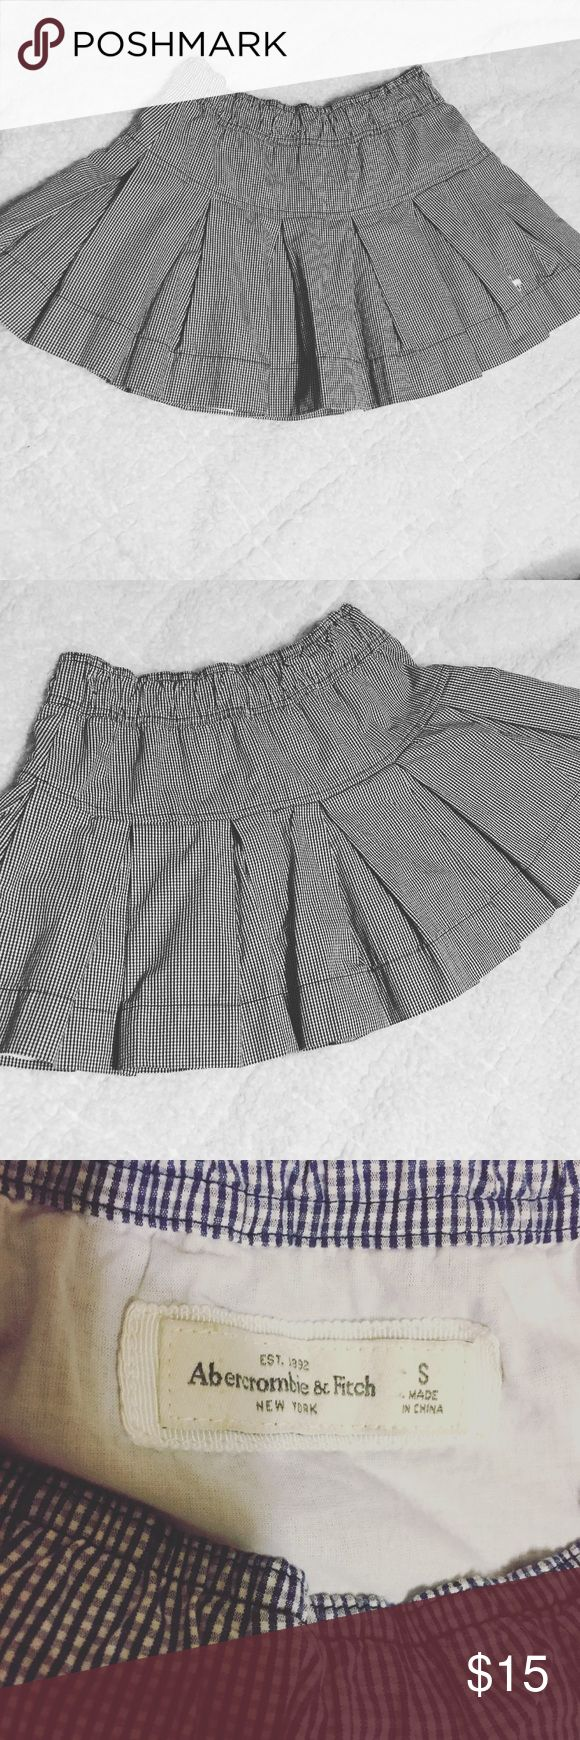 Pleated Abercrombie and Fitch school girl skirt Navy blue and white all over pleated school girl skirt. Size Small. Stretchy waist band. Super cute with a light sweater or cardigan! Abercrombie & Fitch Skirts